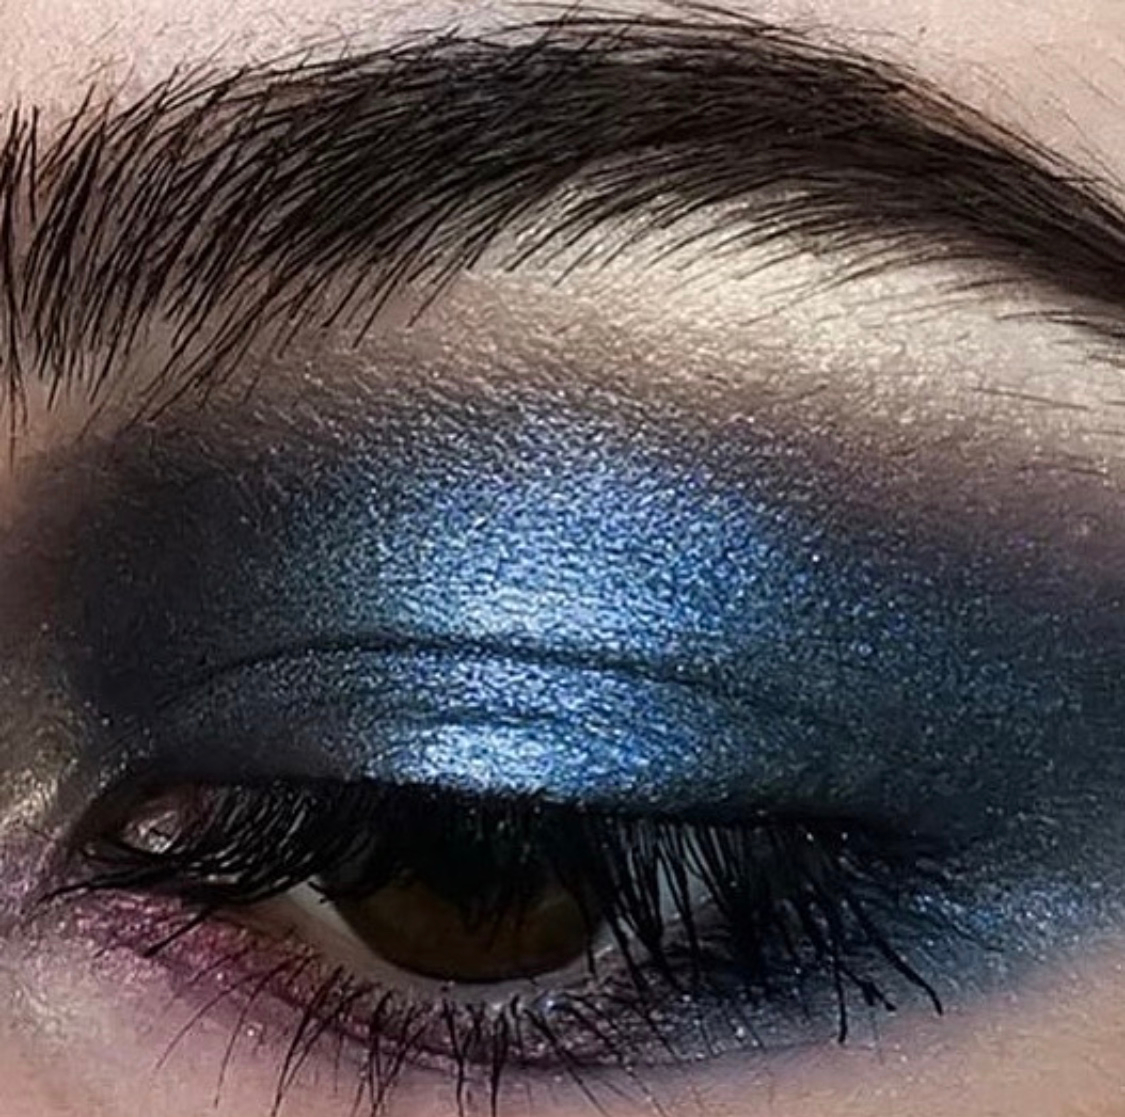 This gorgeous eye look is too lovely not to share twice! #futurefaces artist @sineadartistry is one to watch   #eyeshadowpalette #palettes #love #art #face #eyelook #eyemakeup #eyemakeuplook #makeuplook #navy #navymakeup #navyeyelook #navyeyeshadow #brows #browlookpic.twitter.com/37mc1iDvGR